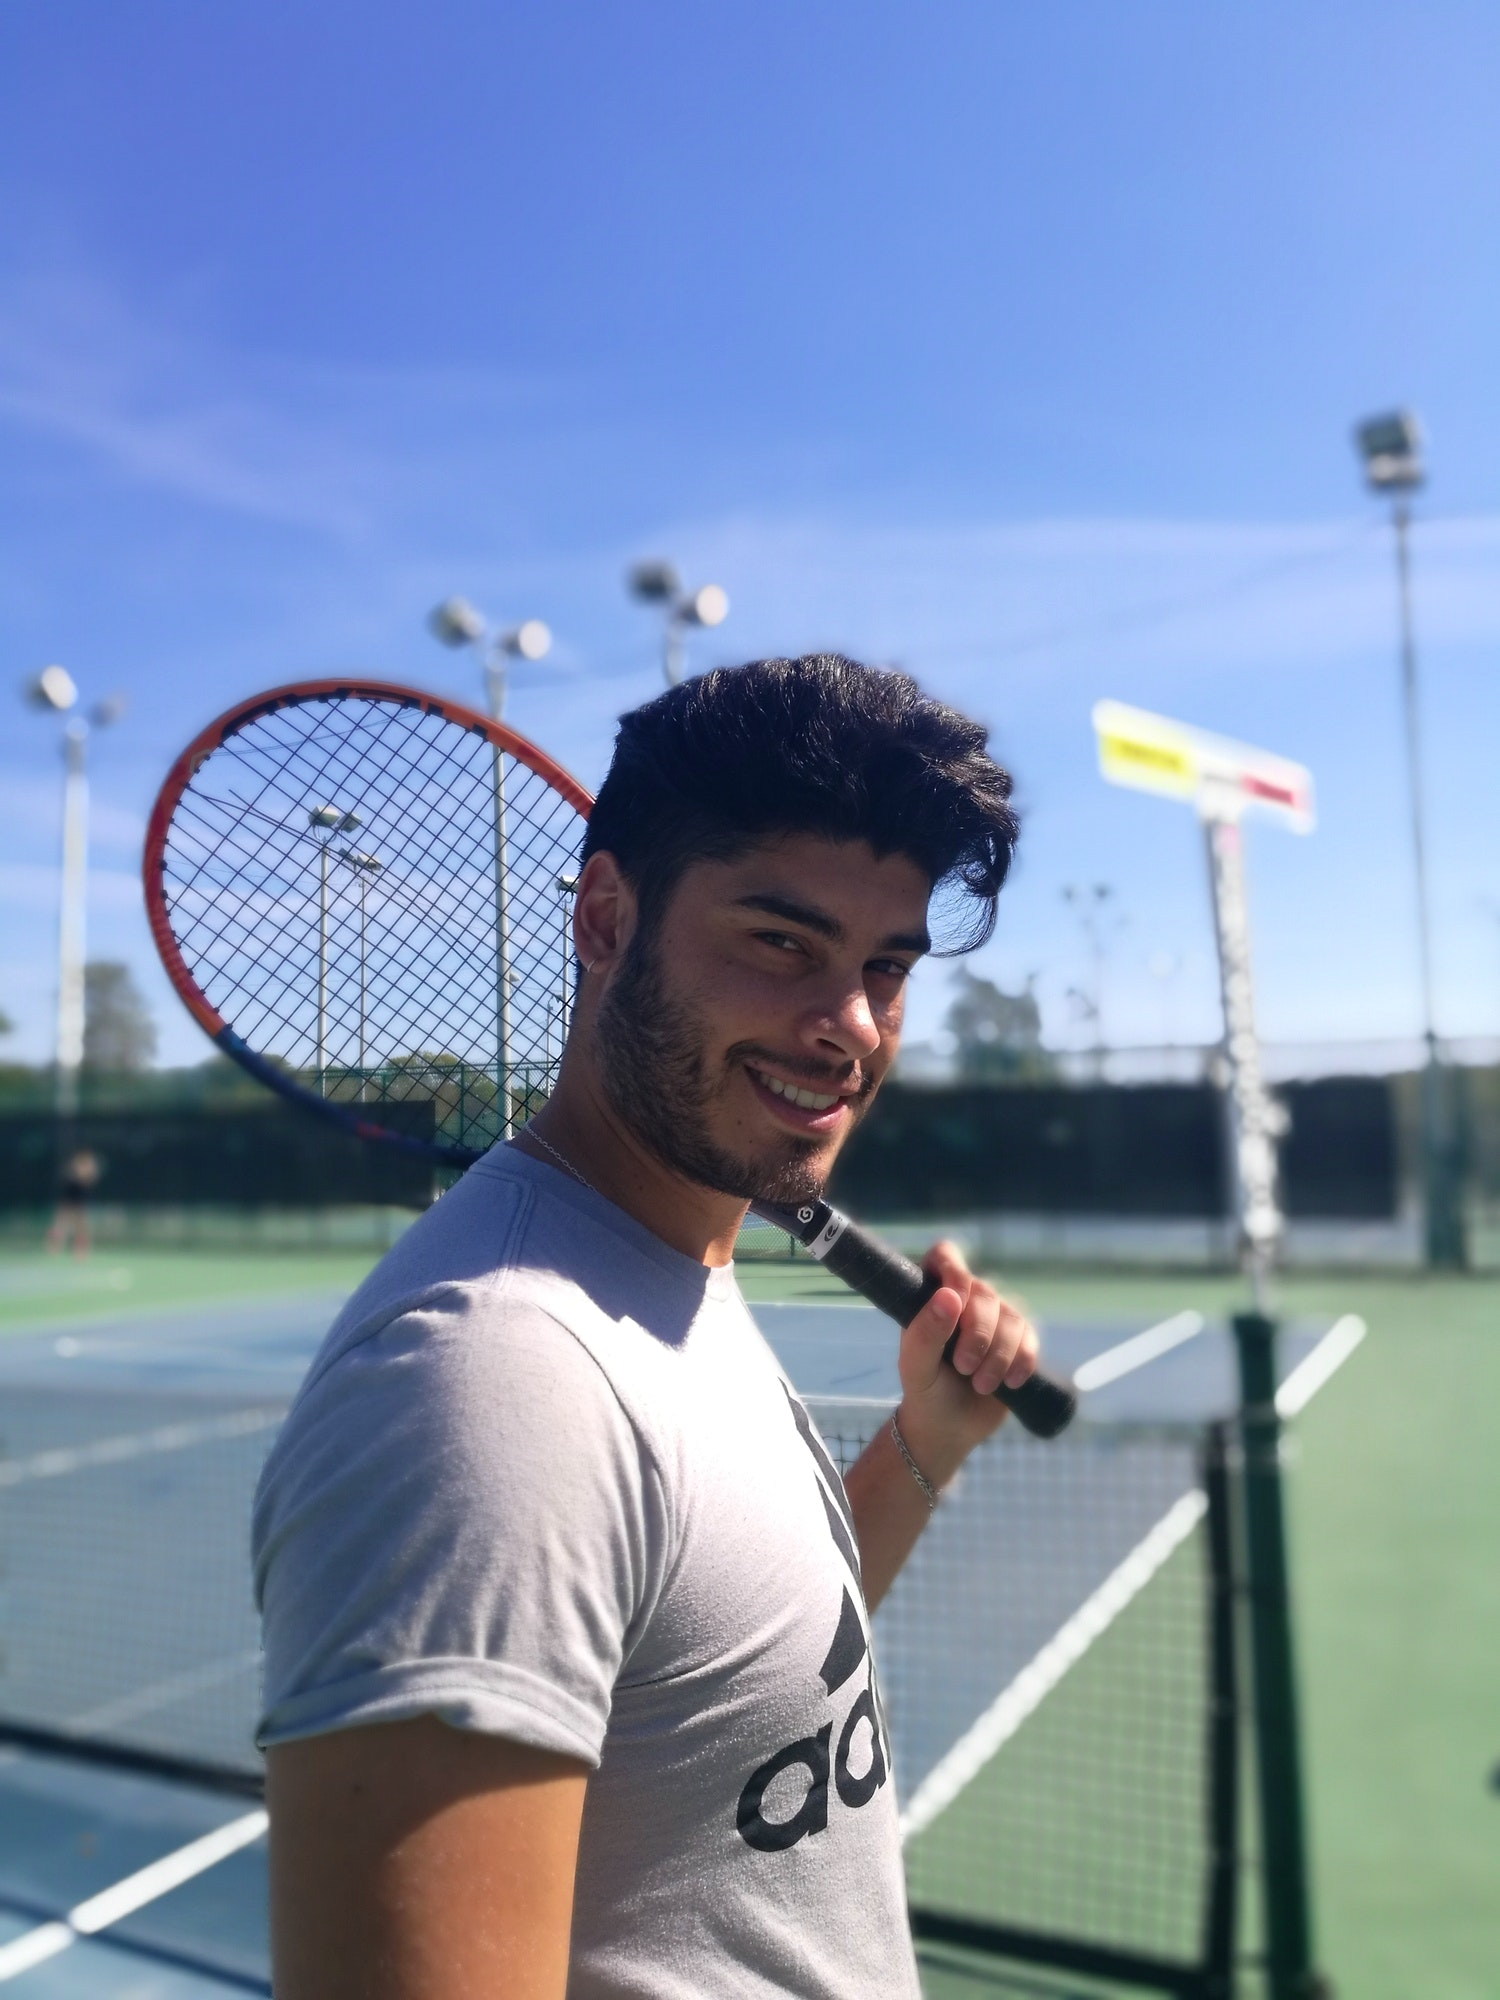 Daniel S. teaches tennis lessons in Miami, FL